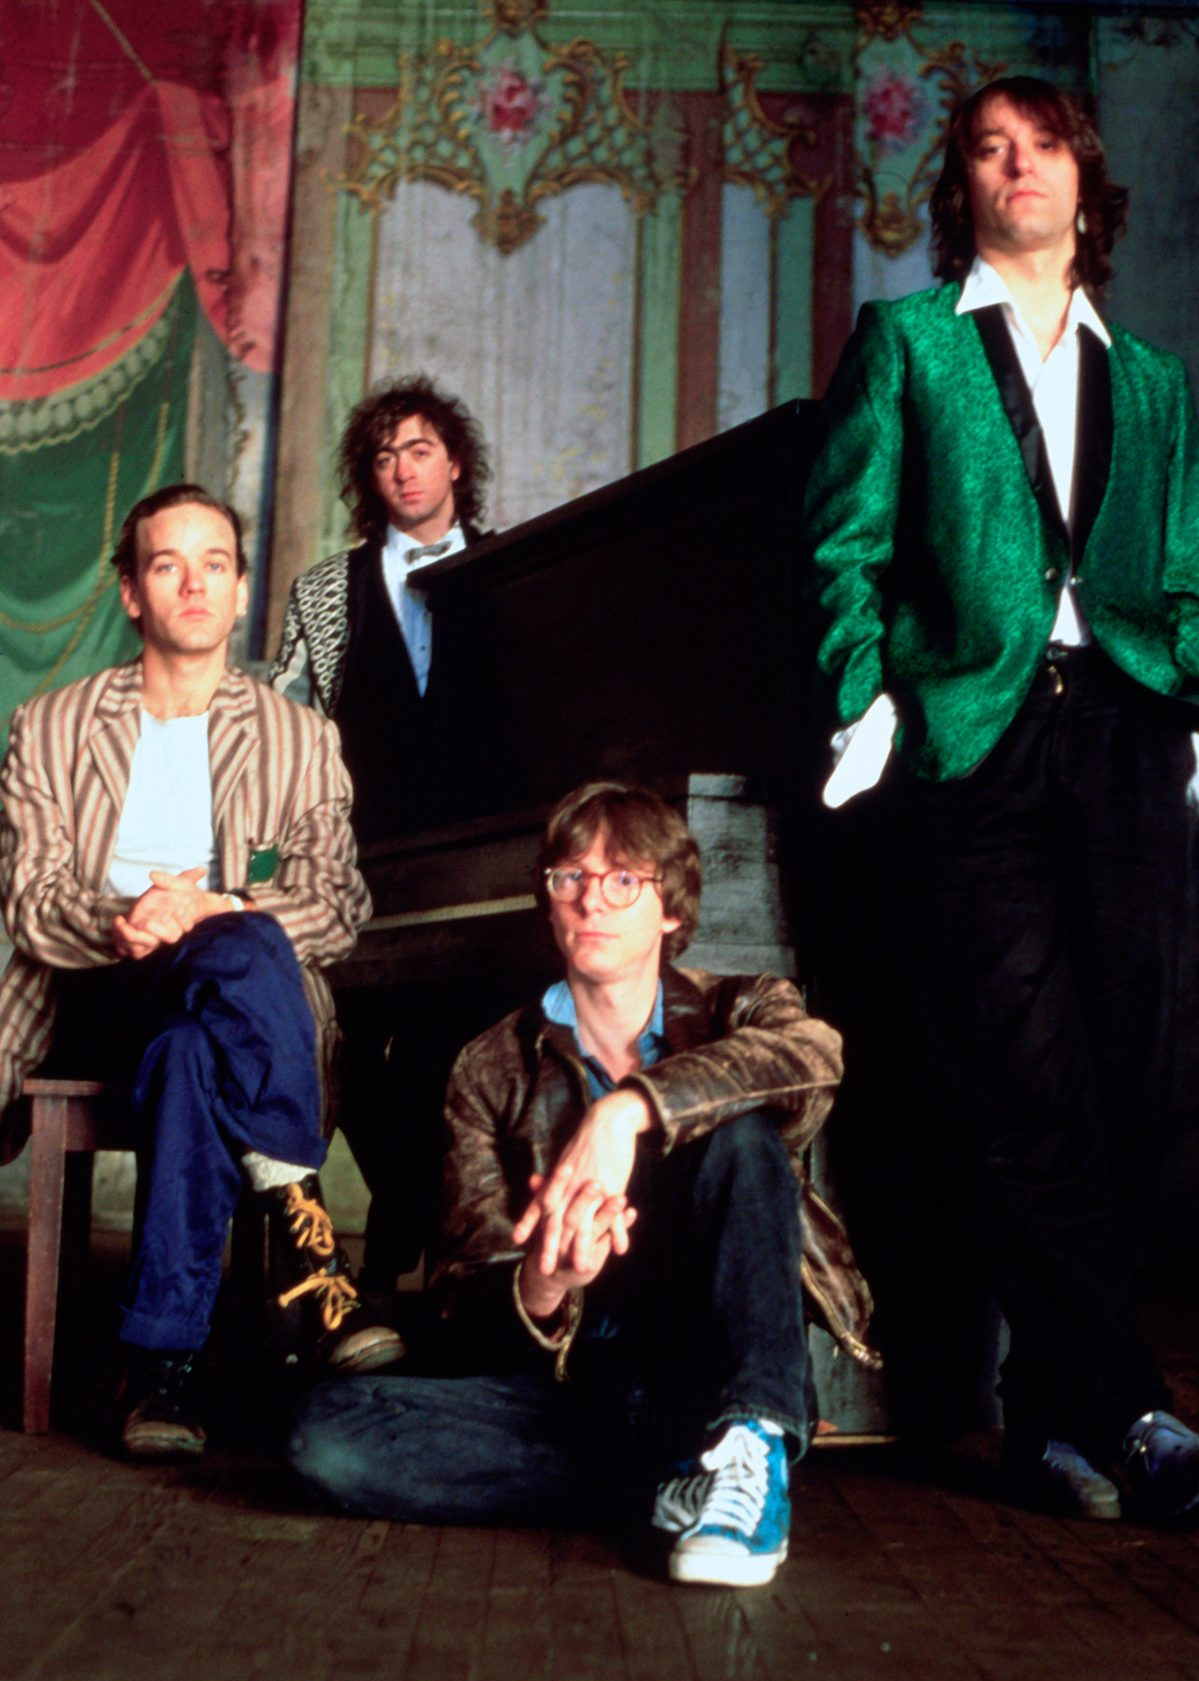 R M Richards Misses Estelle S Dressy Dresses In: R.E.M.'s 'Out Of Time' Gets Deluxe 25th Anniversary Reissue